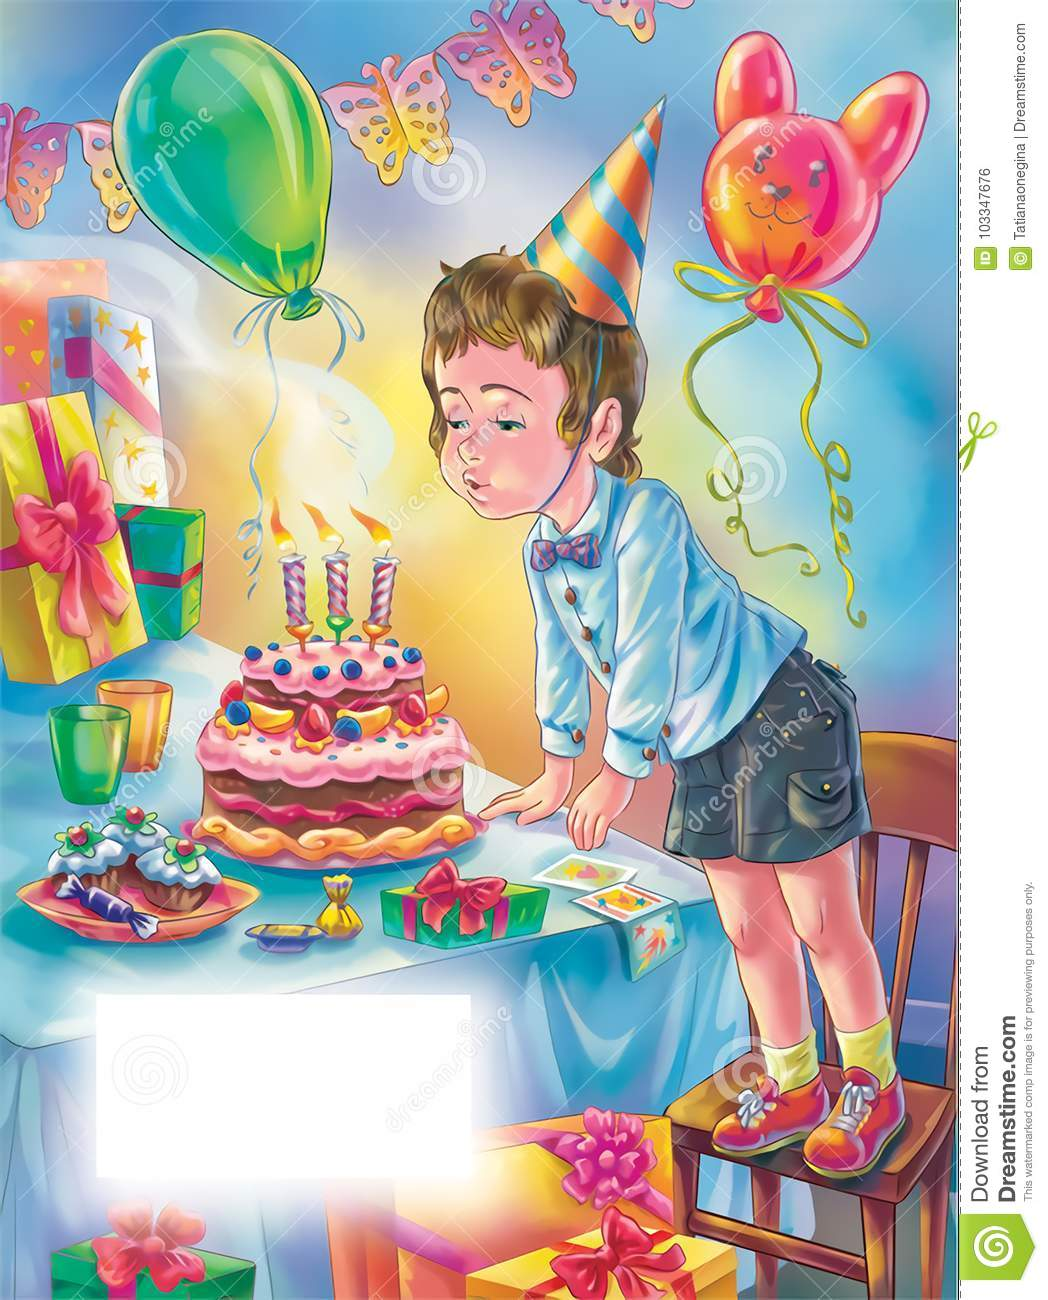 Art For Happy Birthday Greeting Card With Boy Blowing Candles On The Cake Template Text